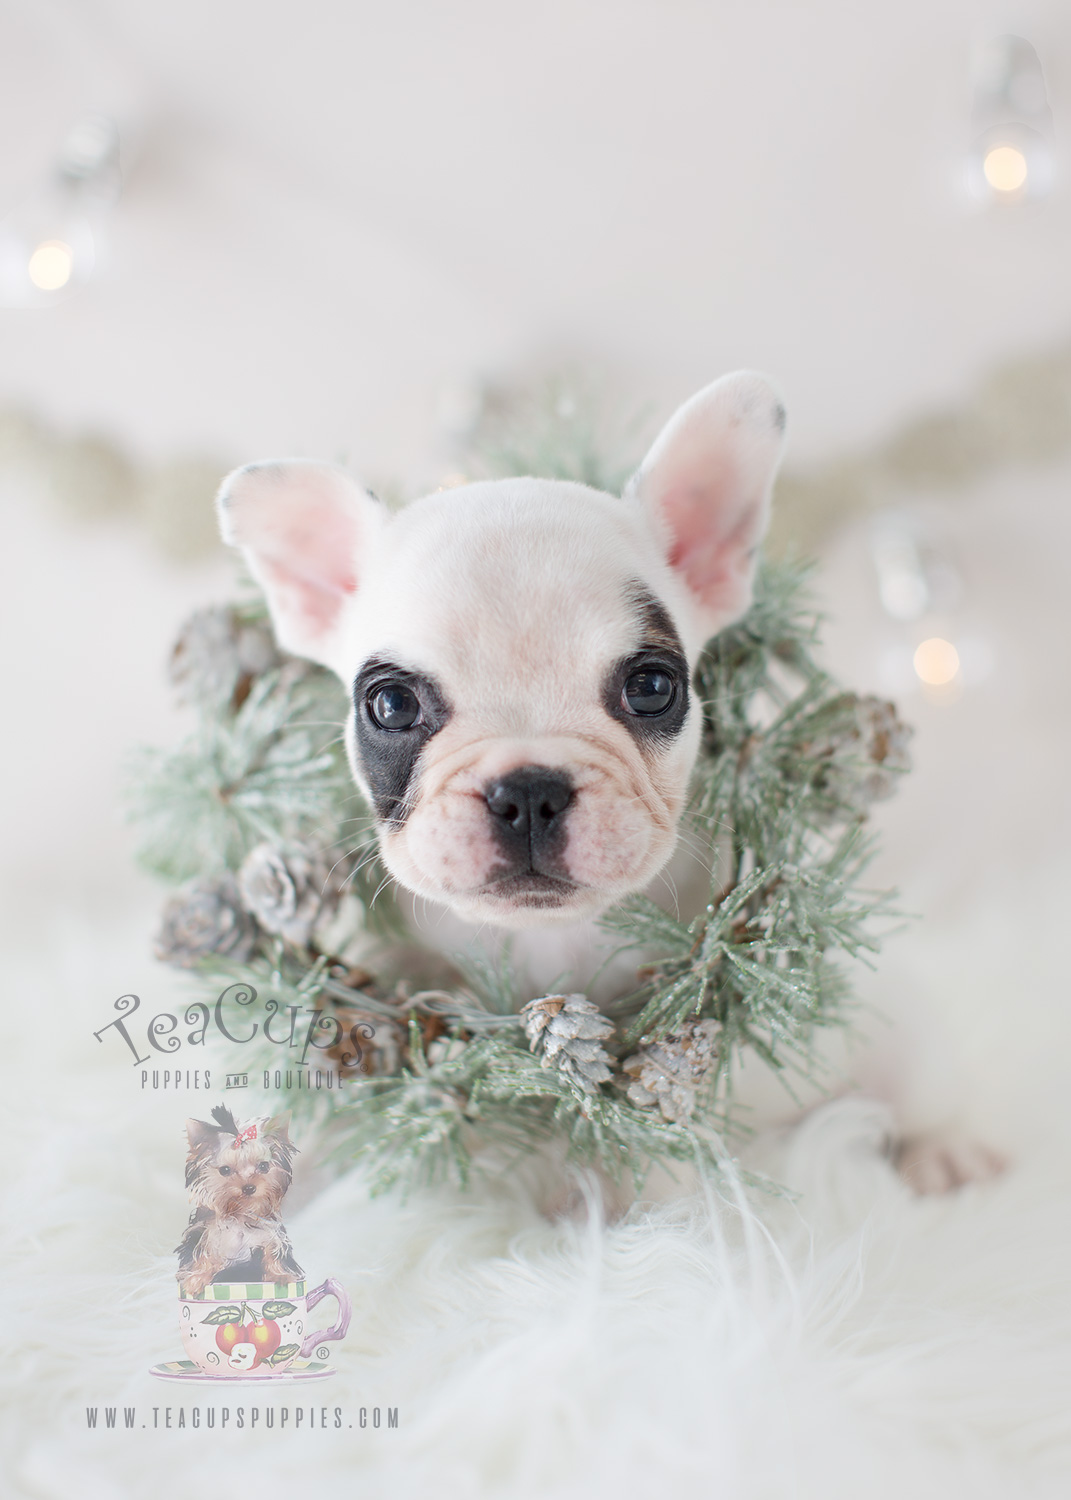 Teacups Puppies White French Bulldog Frenchie Puppy #301